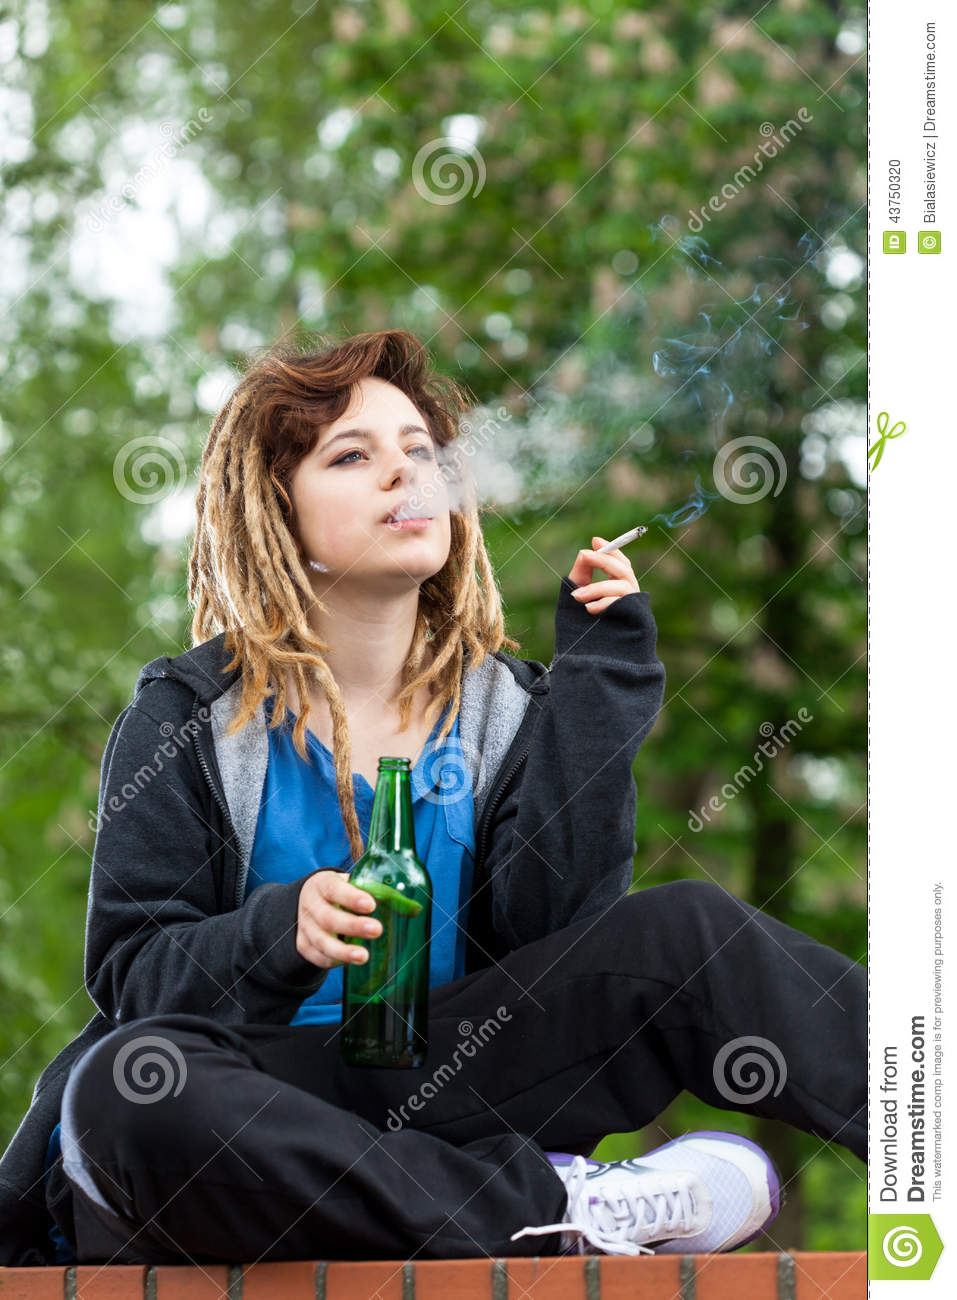 Girl Drinking Alcohol Wallpaper Teenage Girl Drinking Beer And Smoking Cigarette Stock